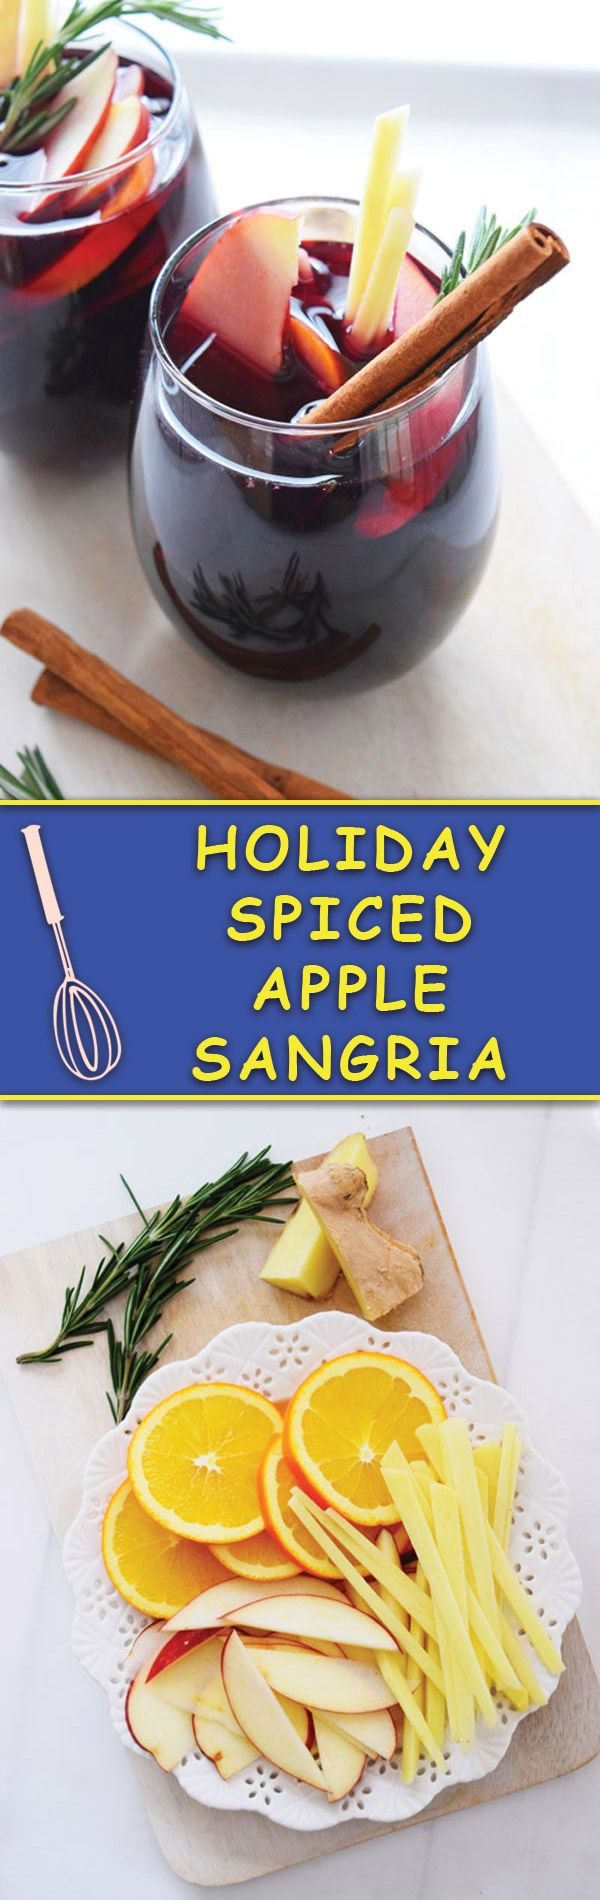 Spiced Apple Sangria - Delicious sangria with apples and spiced with cinnamon and